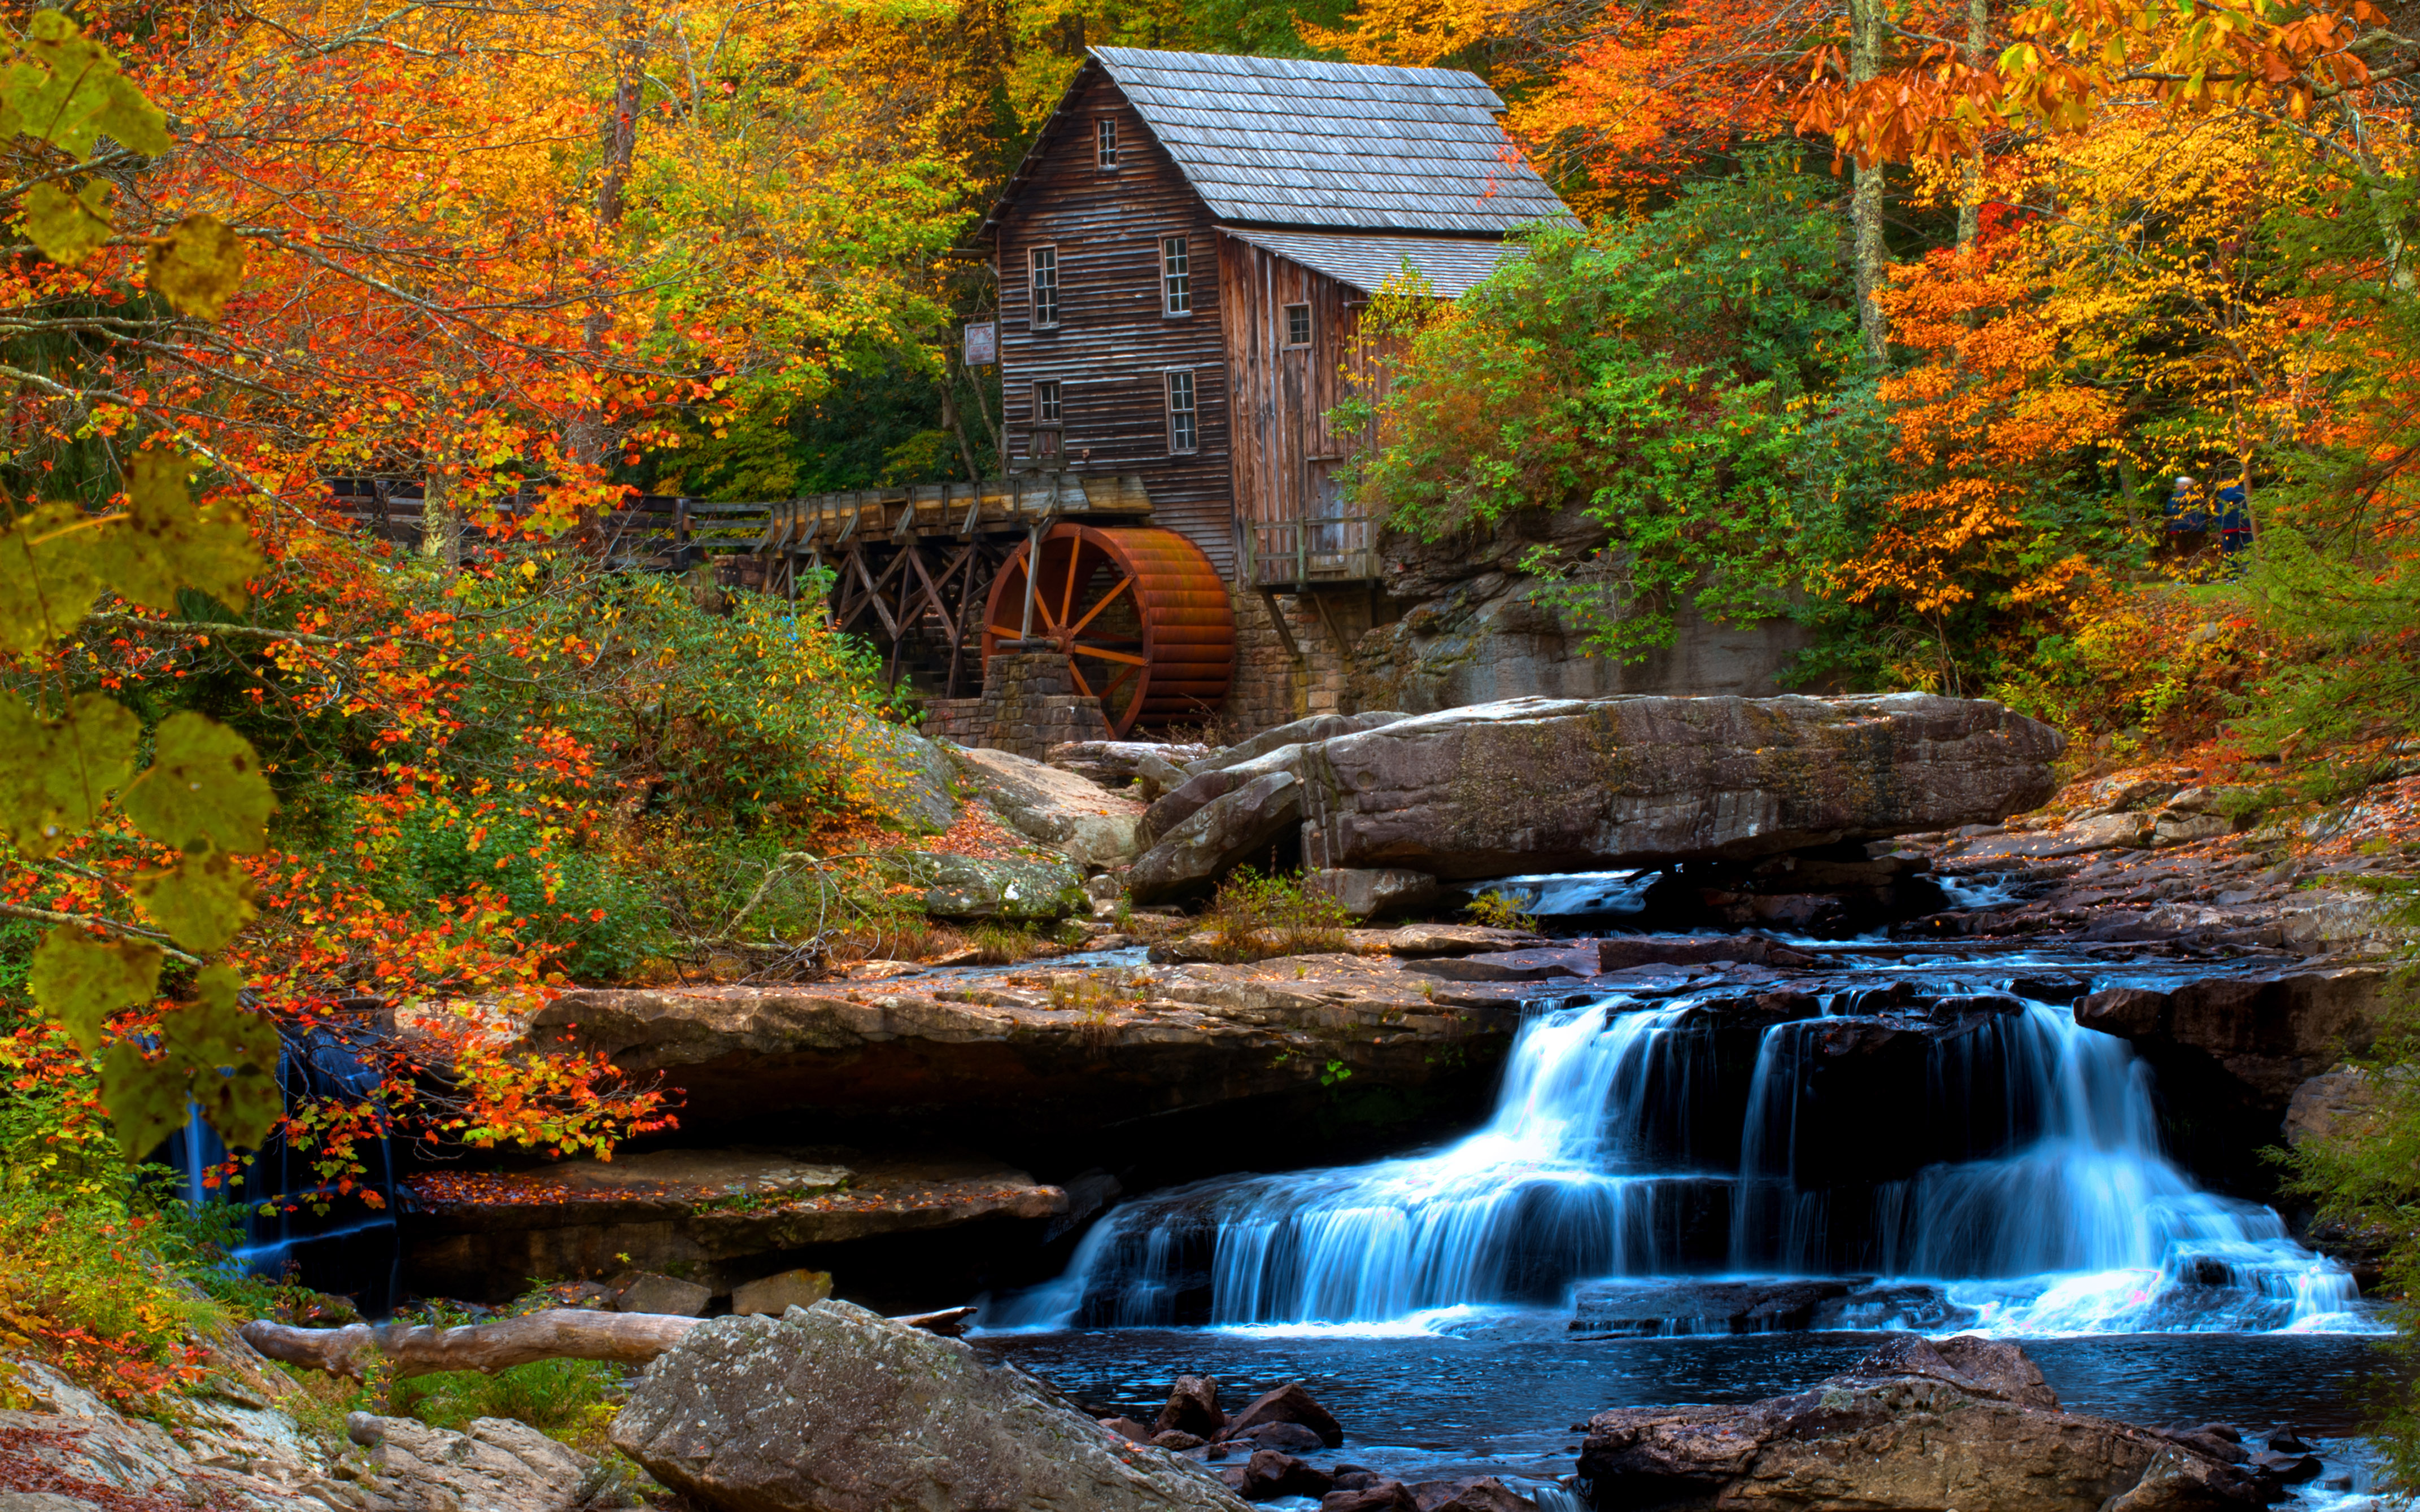 Fall Foliage Computer Wallpaper Old Wooden Mill Water Flow Rock Waterfall Hd Wallpaper For